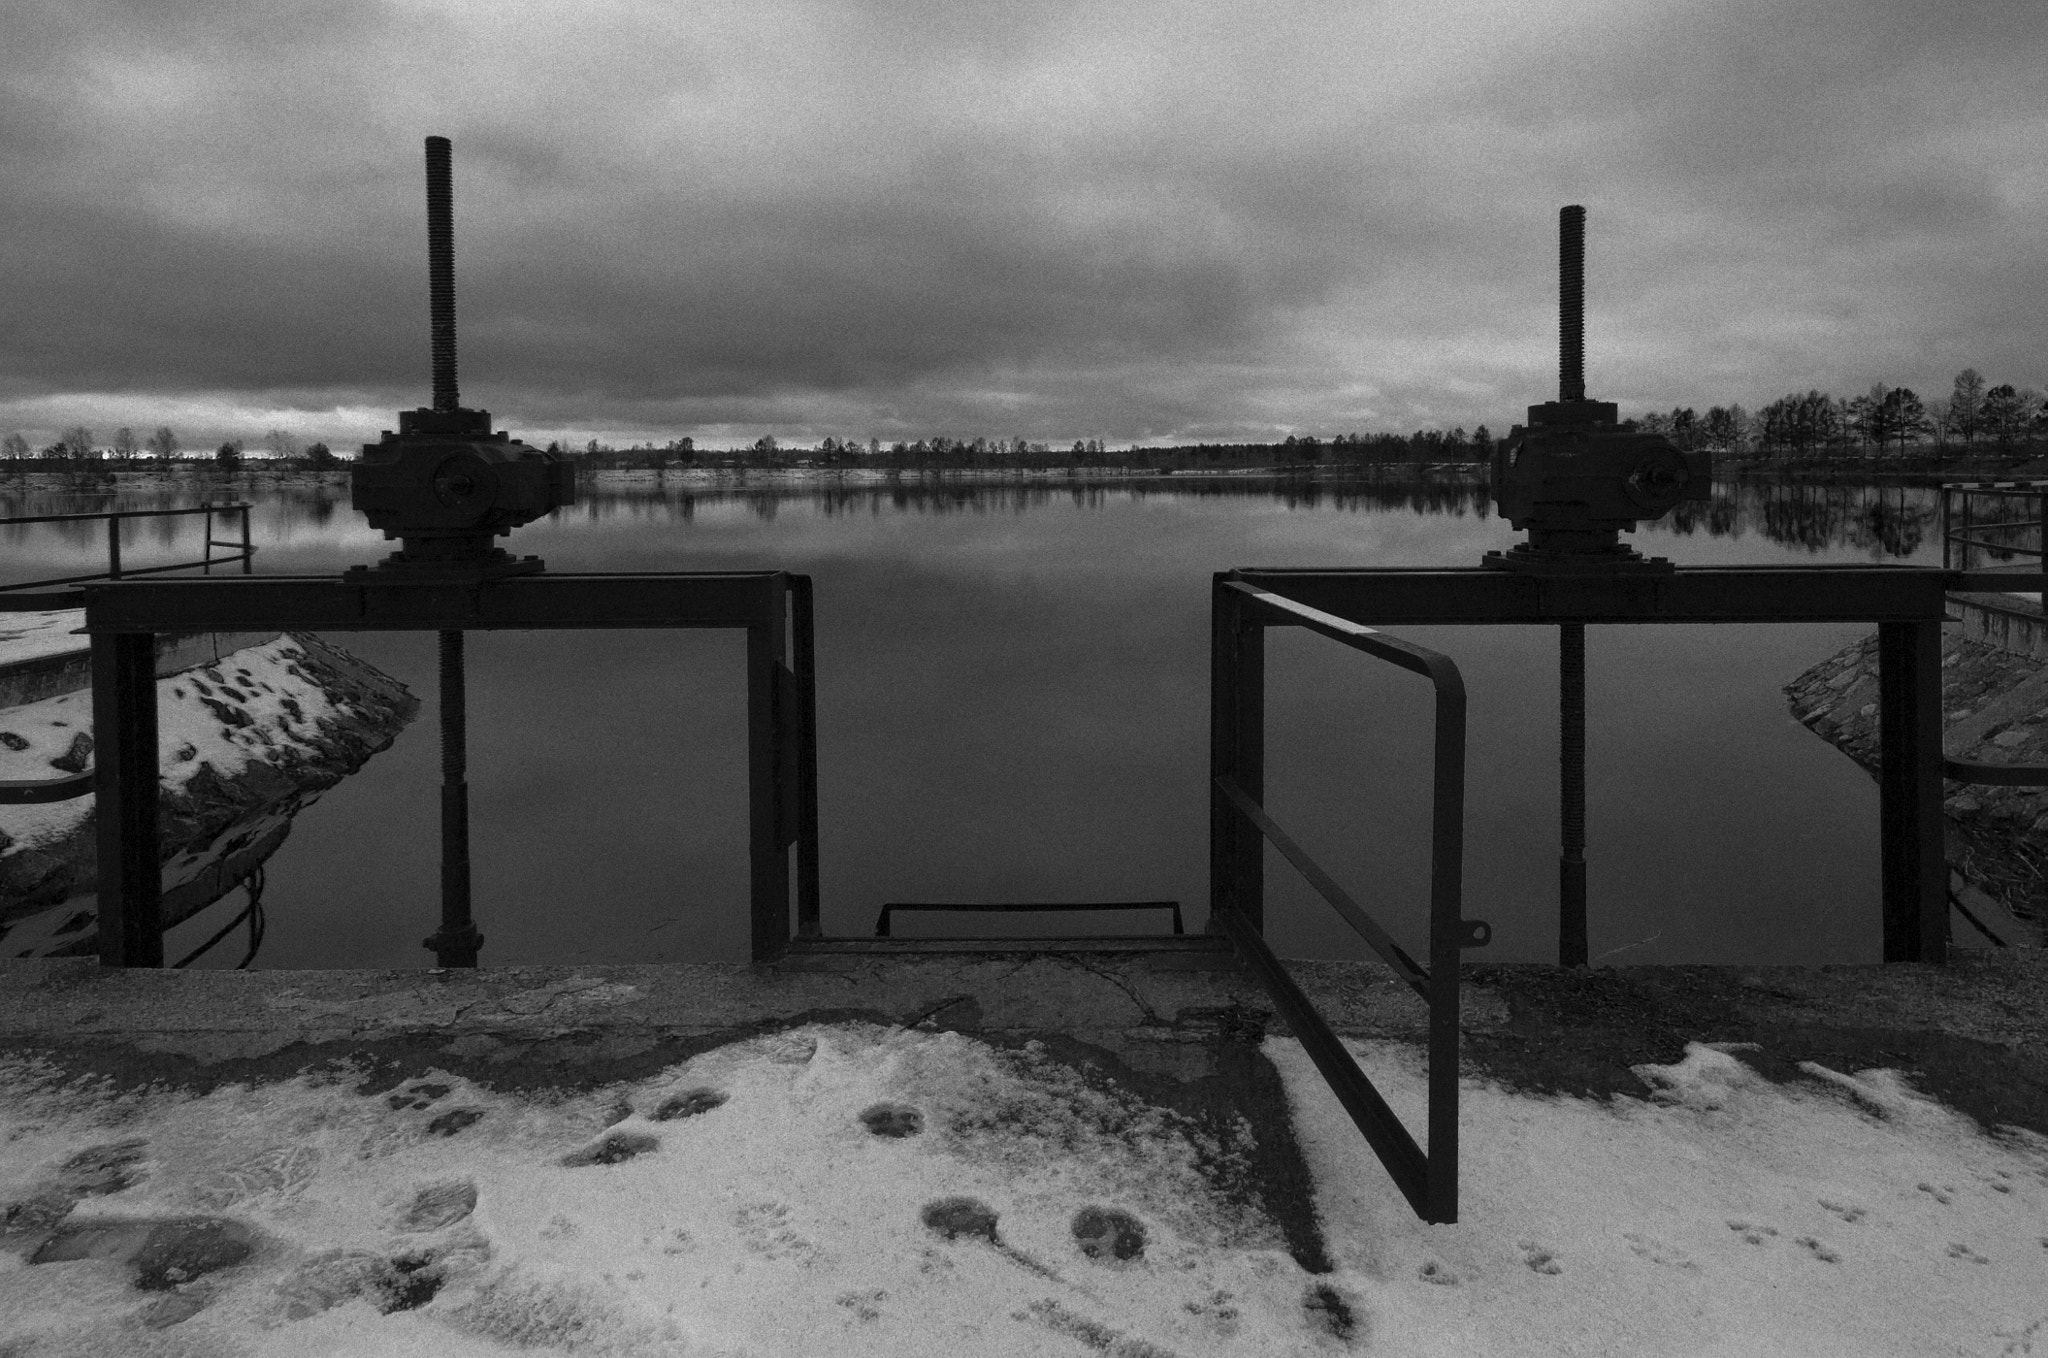 Photograph Wicket directly into the cold water (The old floodgate) by Alexandr A on 500px